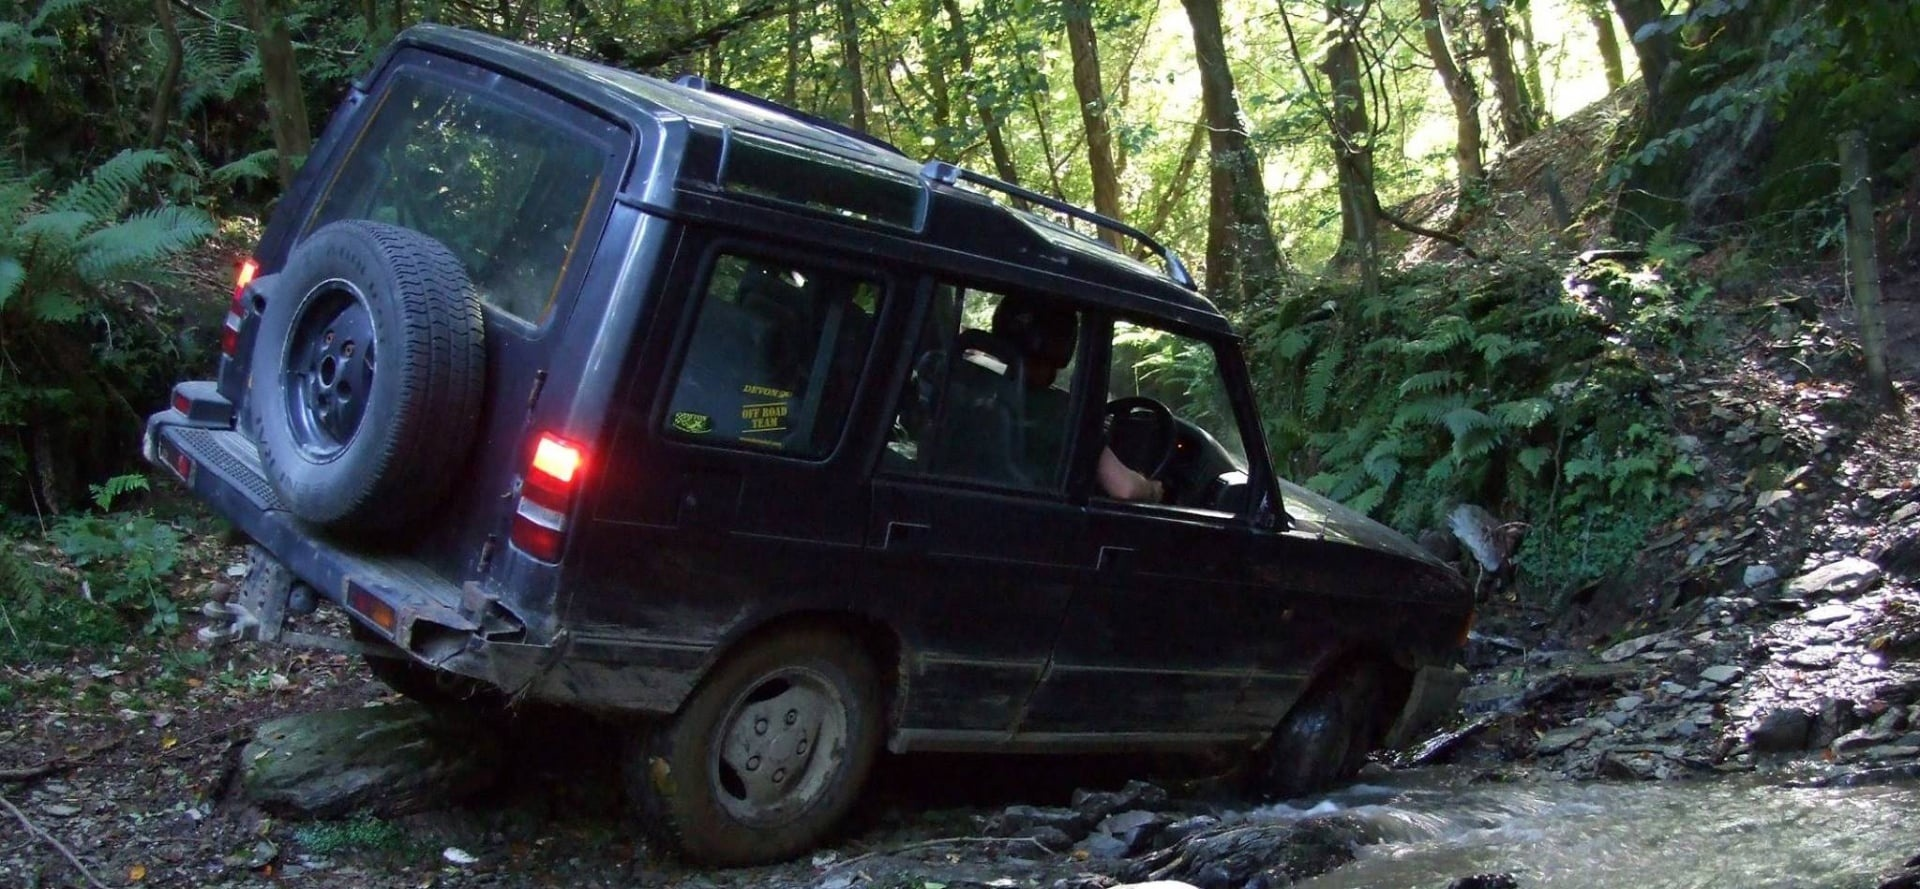 45 Minute 4x4 Driving Experience in Devon-4